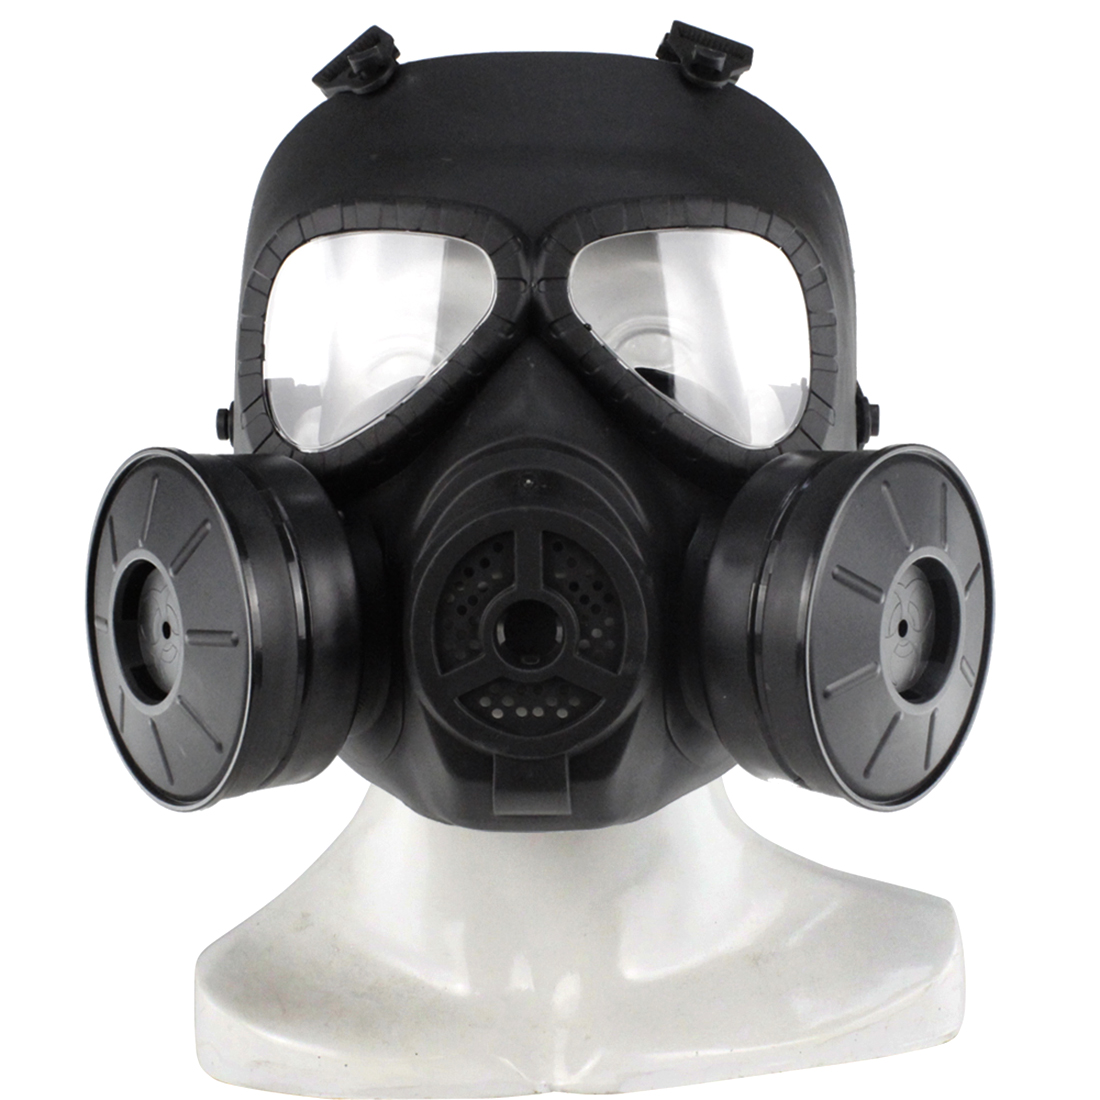 Surwish Head Mask Full Face Double Canister Electric Ventilative Biochemical Gas Mask for Nerf Games